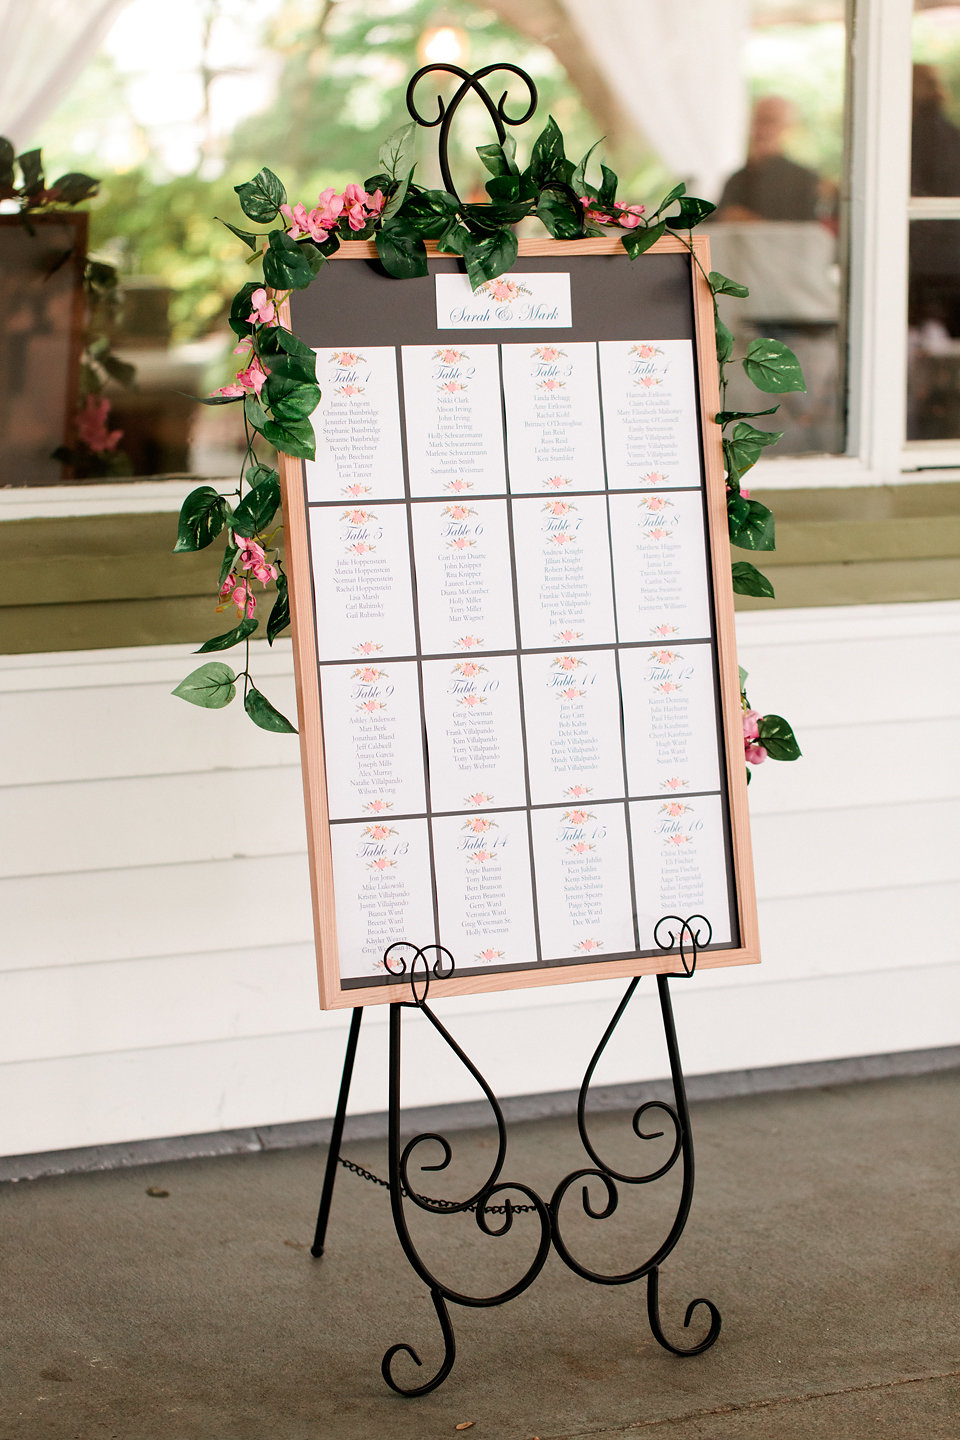 A seating chart directed guests to their table assignments inside.